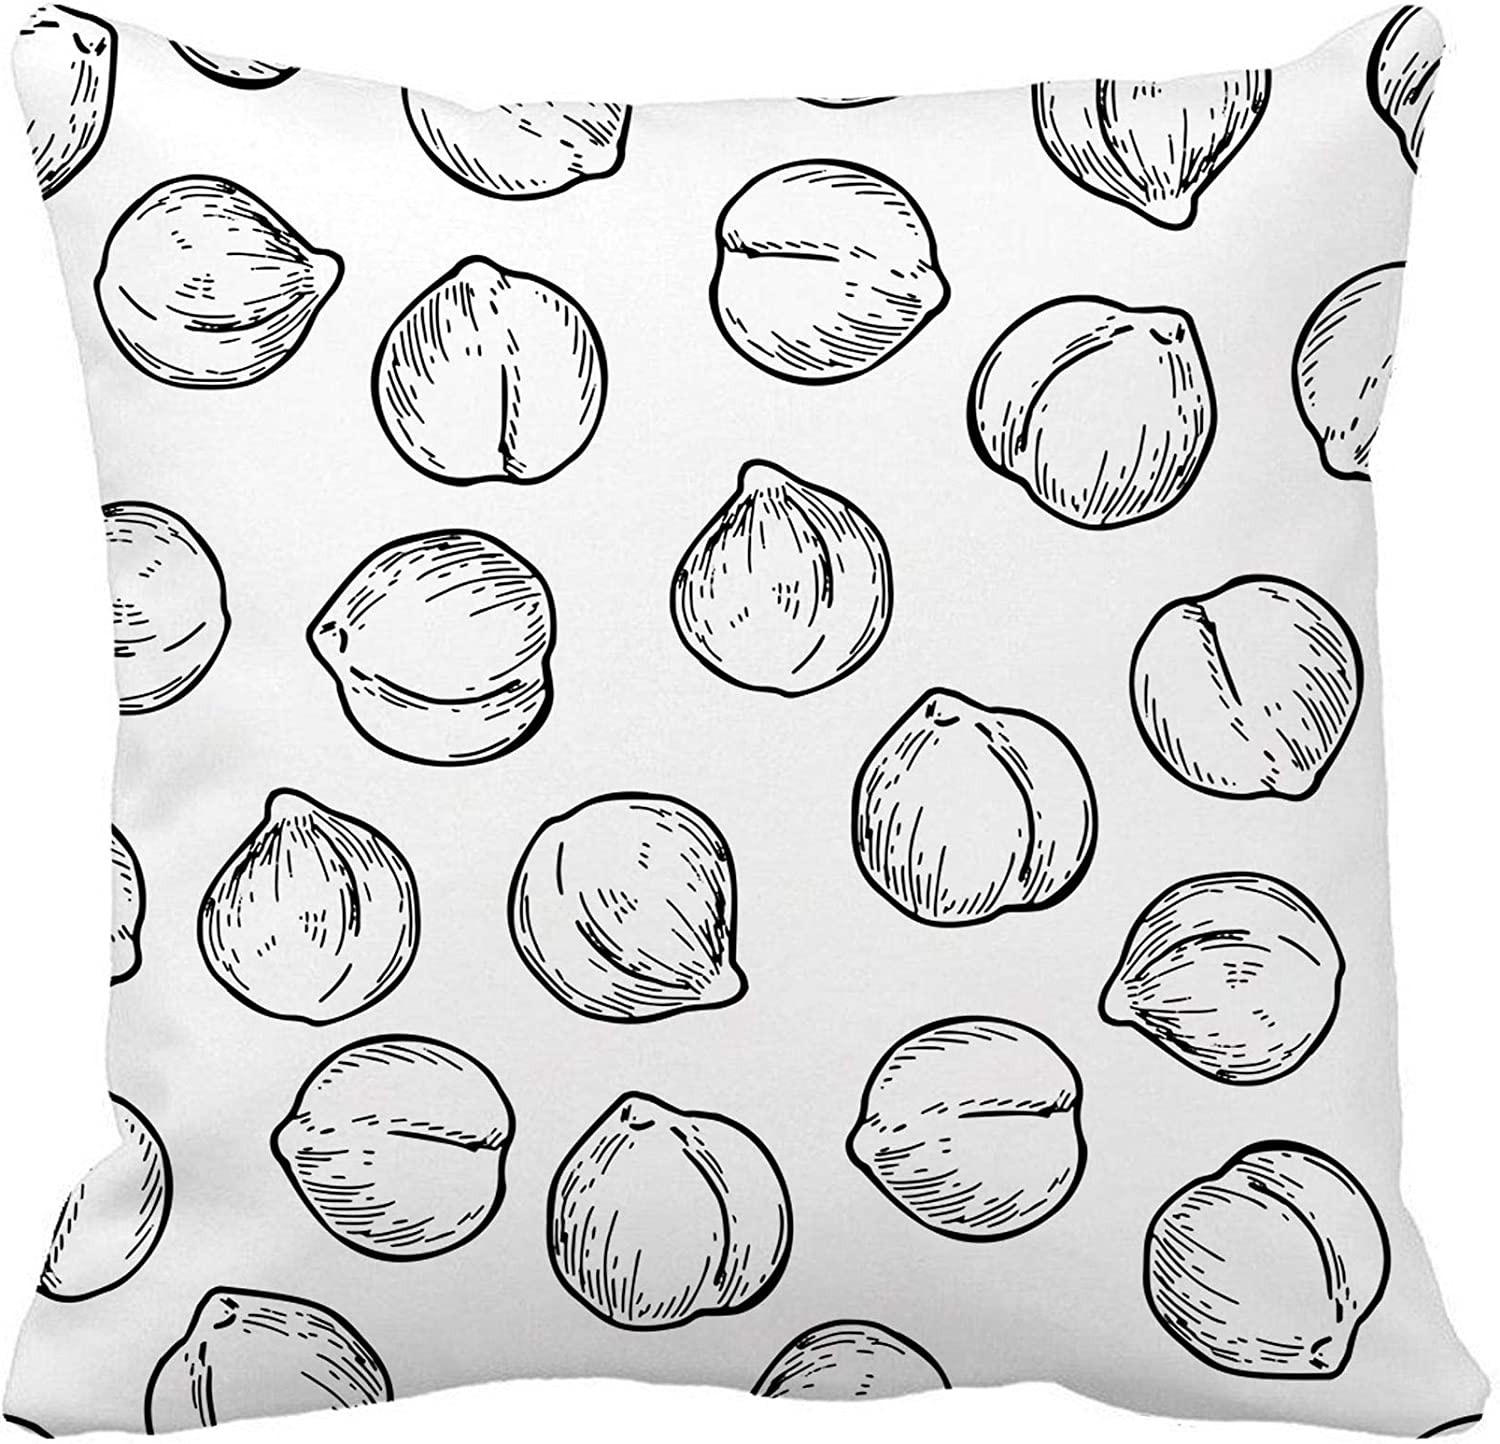 Awowee Throw Pillow Cover Chickpeas Vegetable Engraved Detailed Vegetarian Food Drawing Farm Market 20x20 Inches Pillowcase Home Decorative Square Pillow Case Cushion Cover